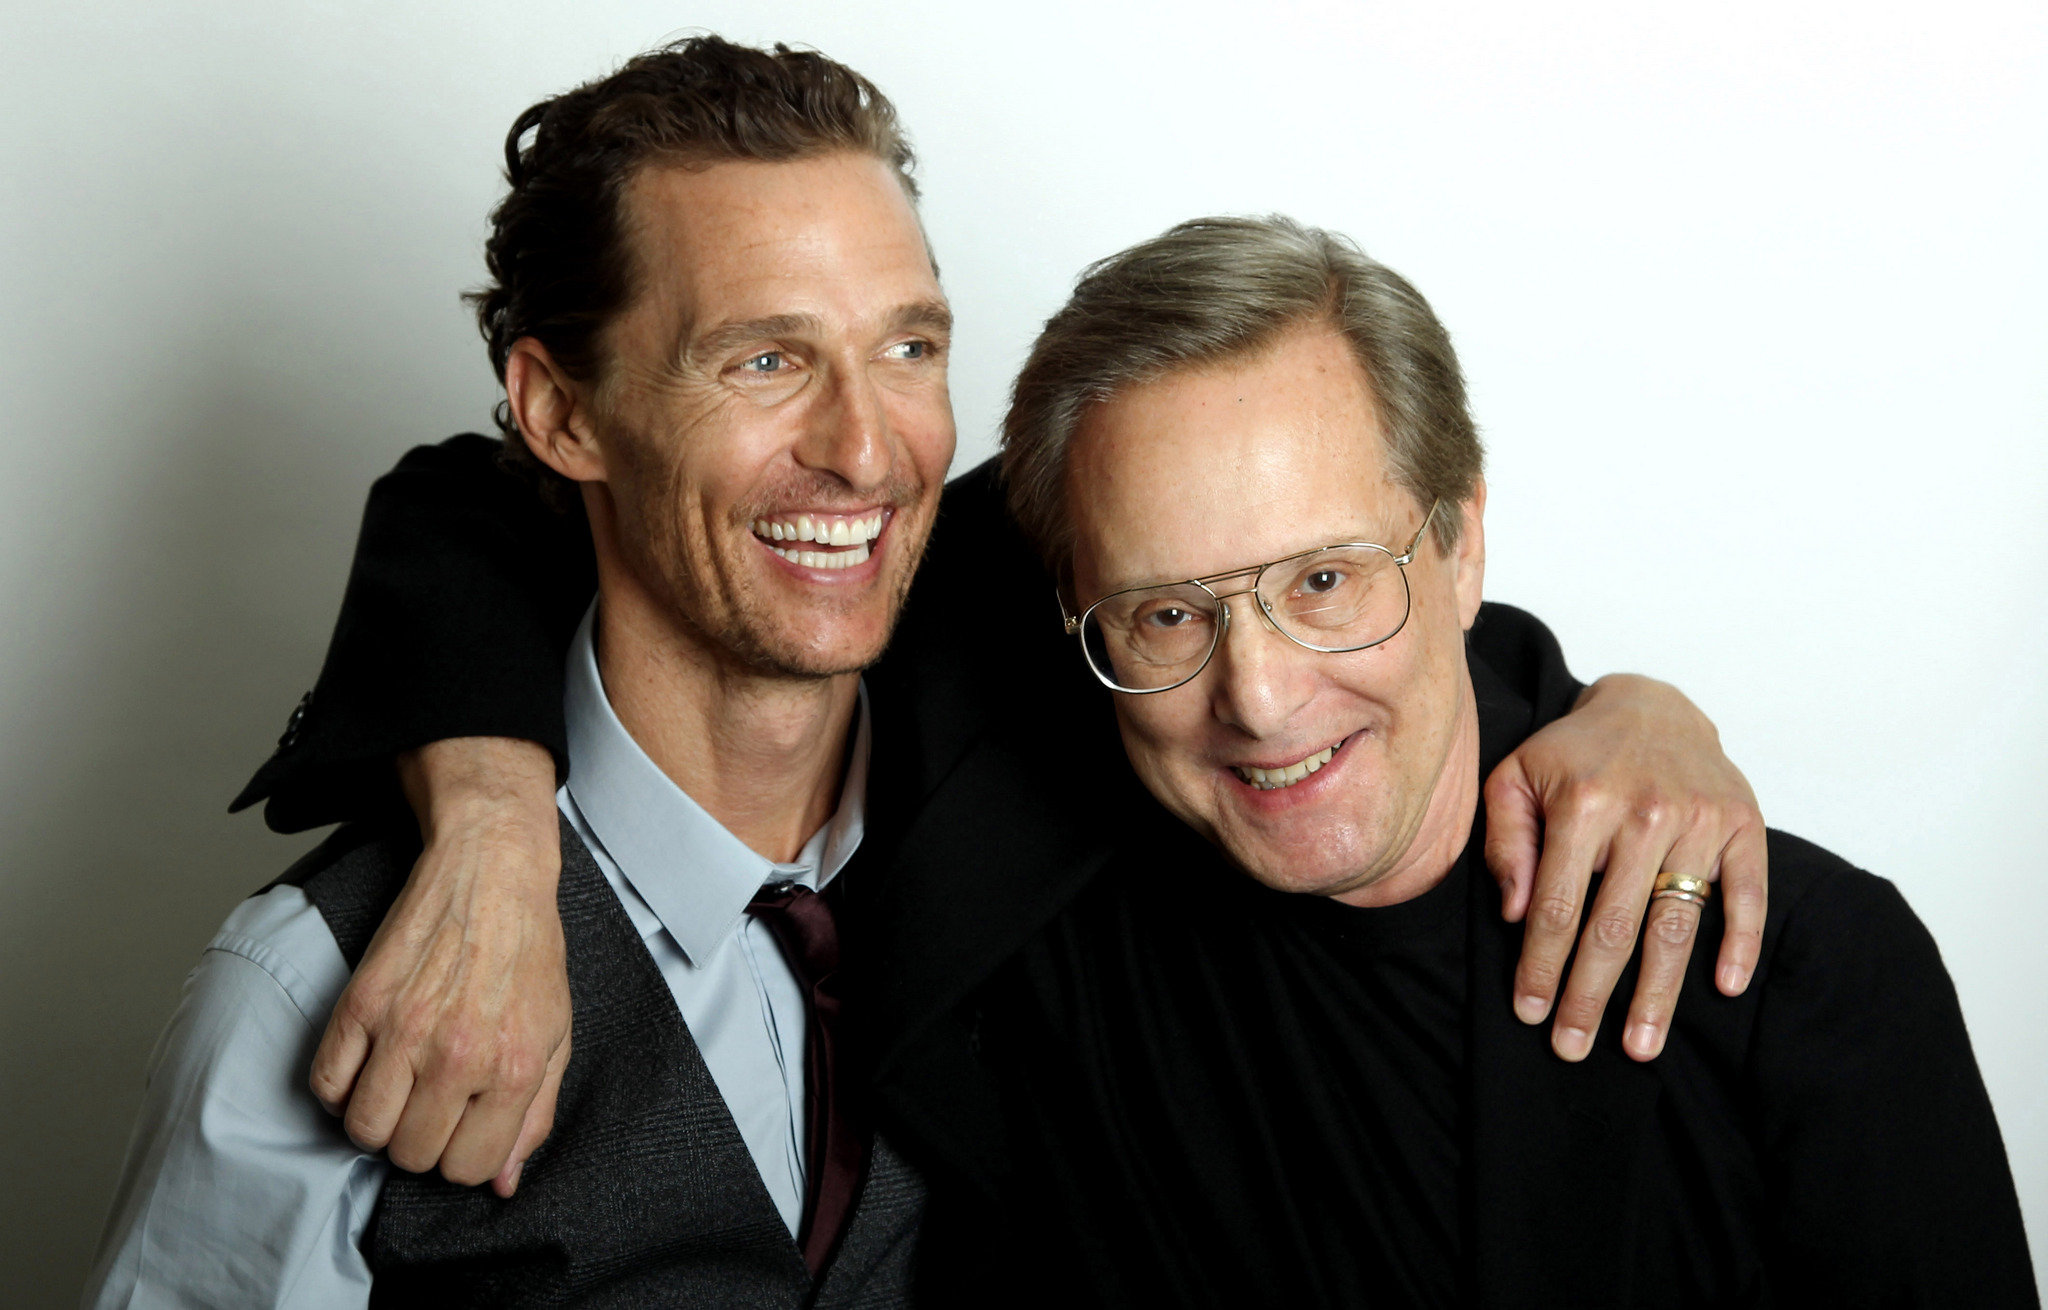 matthew-mcconaughey-william-friedkin-1bb1c9dd00319e1d